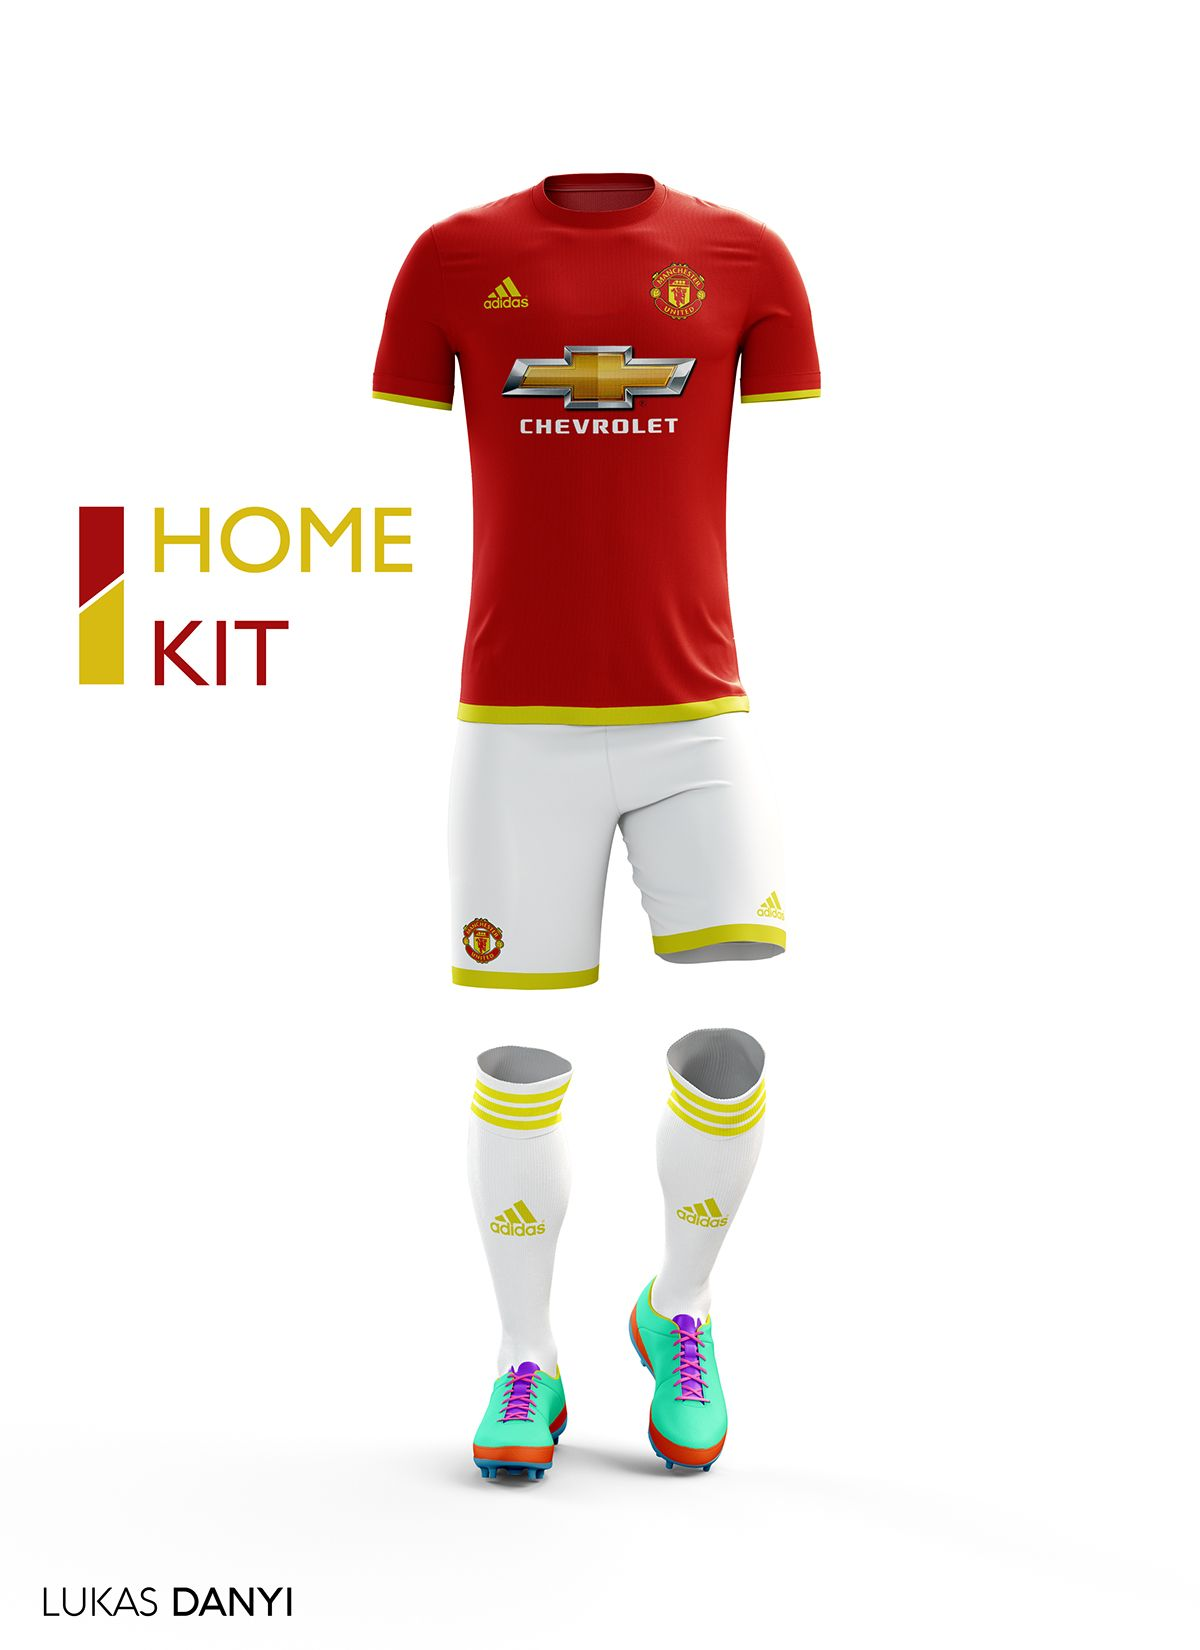 512x512 galatasaray home kit pictures free download - Some Of You Ask Me To Design Manchester United Kits Sow I Designed Football Kits